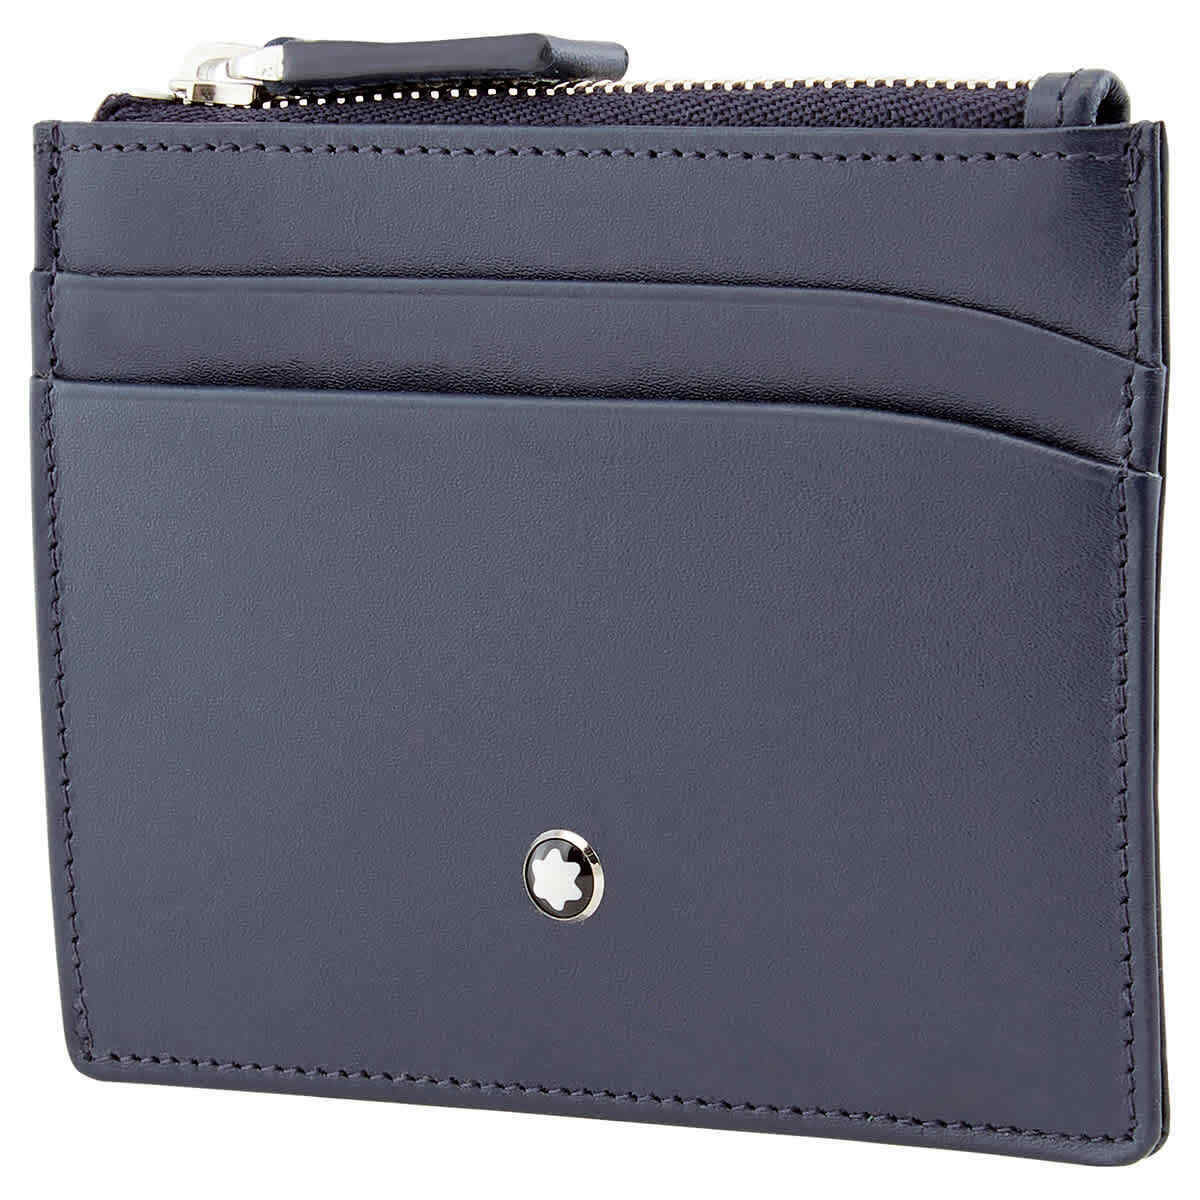 Montblanc Blue Card Case With Zip Pocket 126224